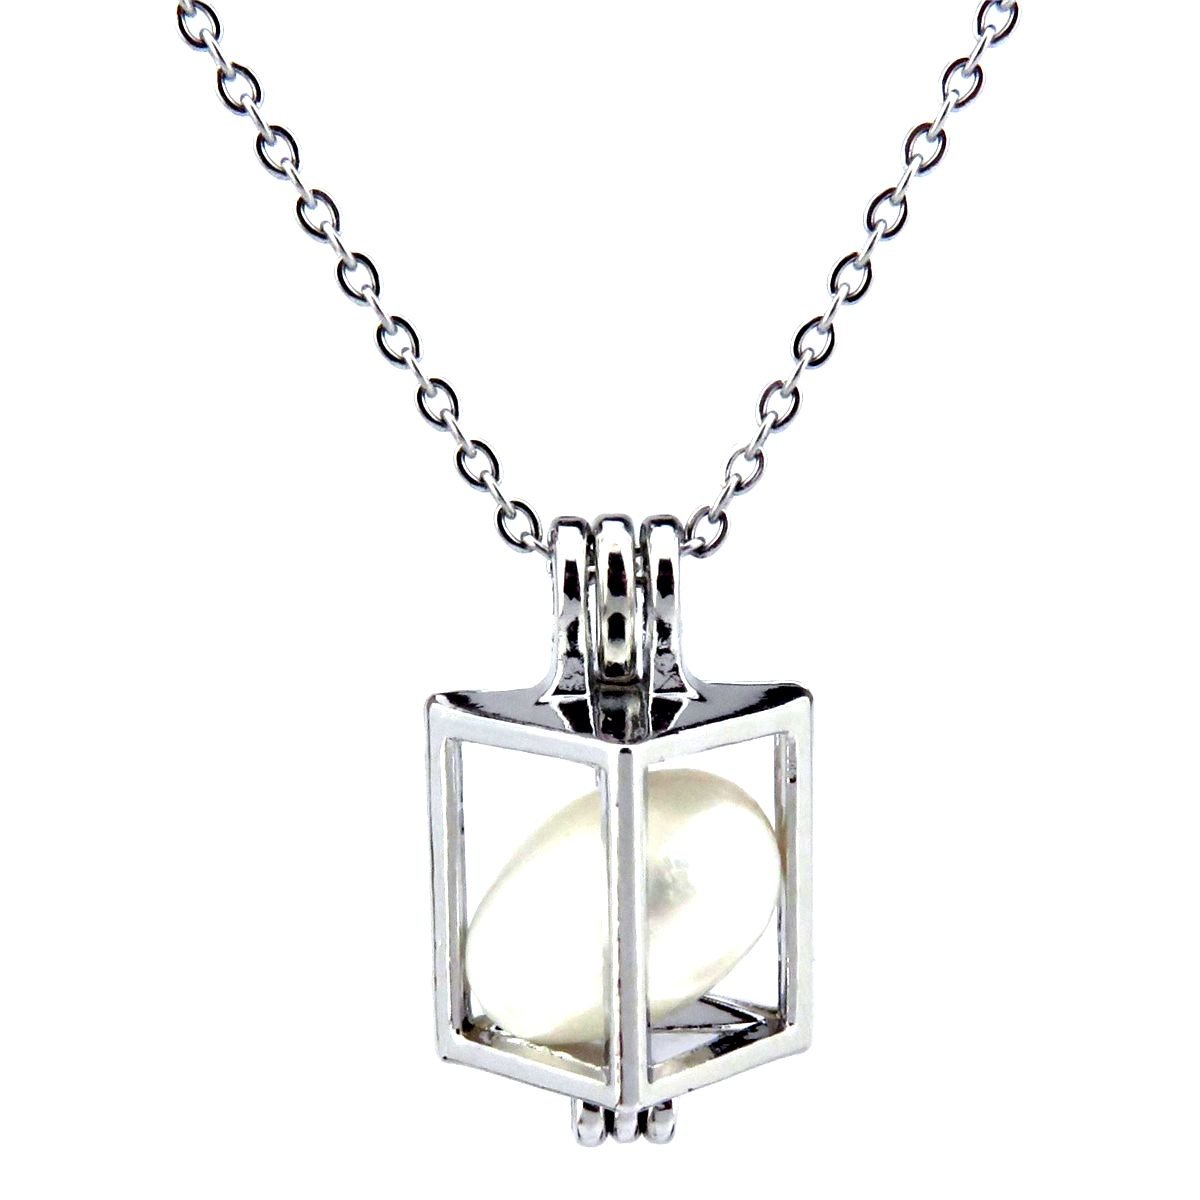 Stones Horse Locket Necklace Geometry Create Your own Pearls Stainless Steel Chain Rocks Horse Beads Cage